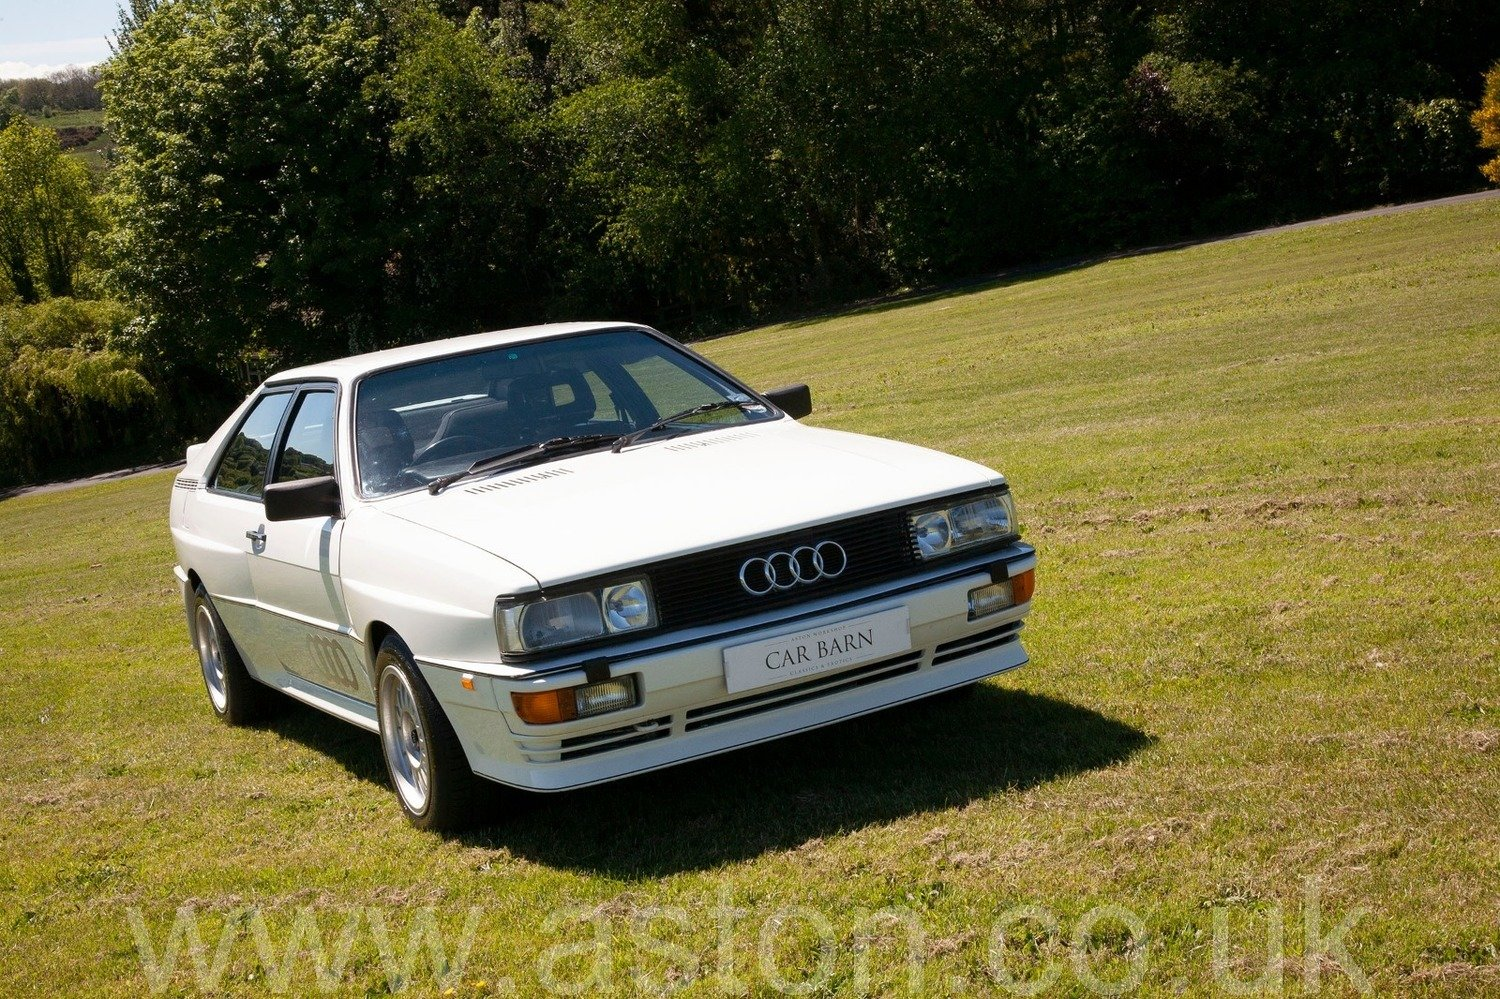 1986 Audi Quattro 2.2L 10v For Sale (picture 1 of 6)